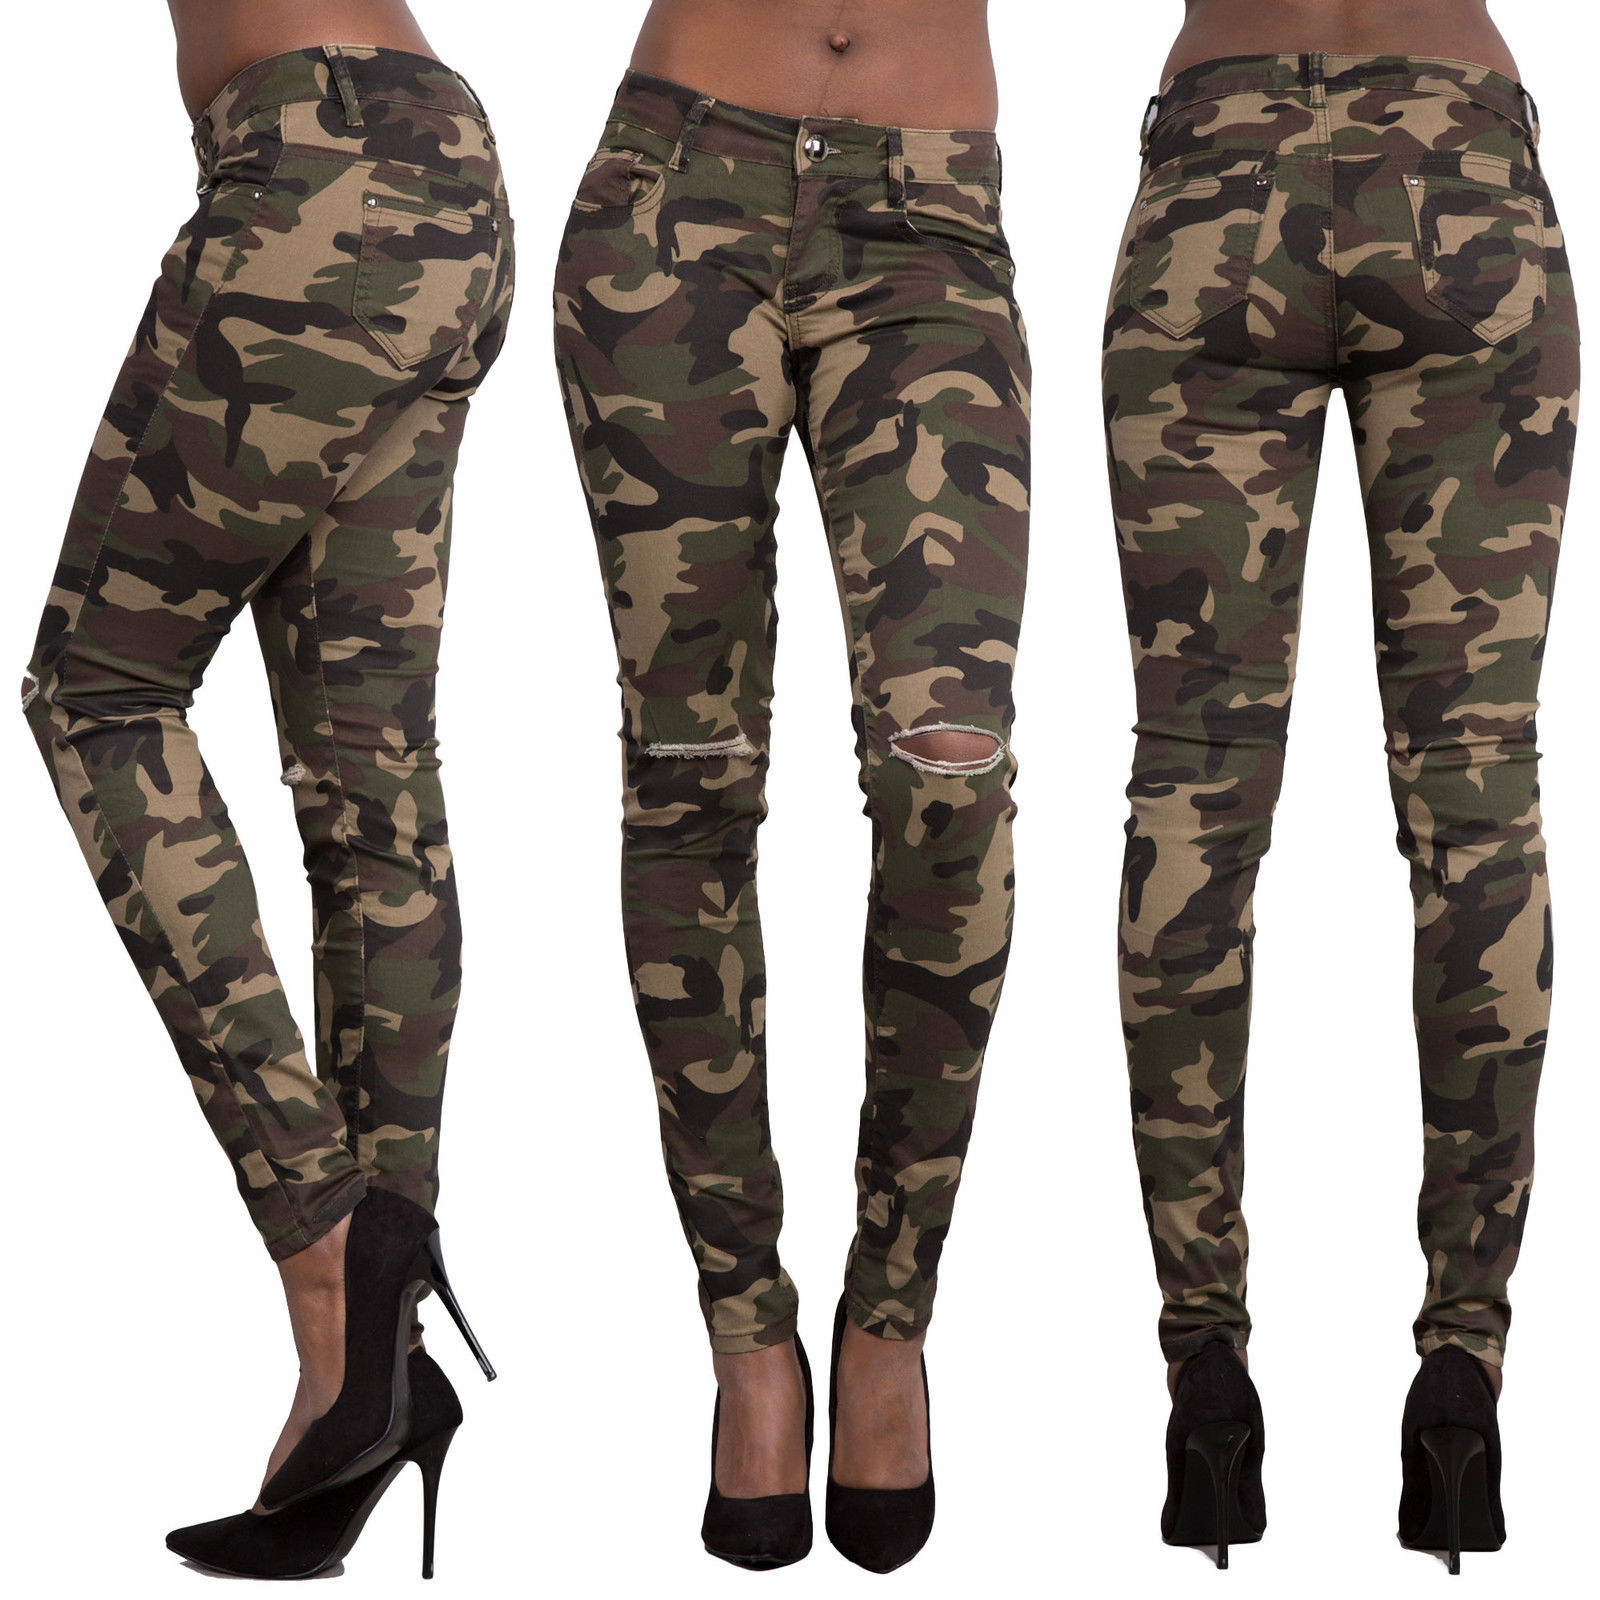 ad70f9491def4 2018 Summer Camouflage Military Pants Women Slim Fit Female Jogger Pants  Ladies Fitness Workout Trousers WDC1265